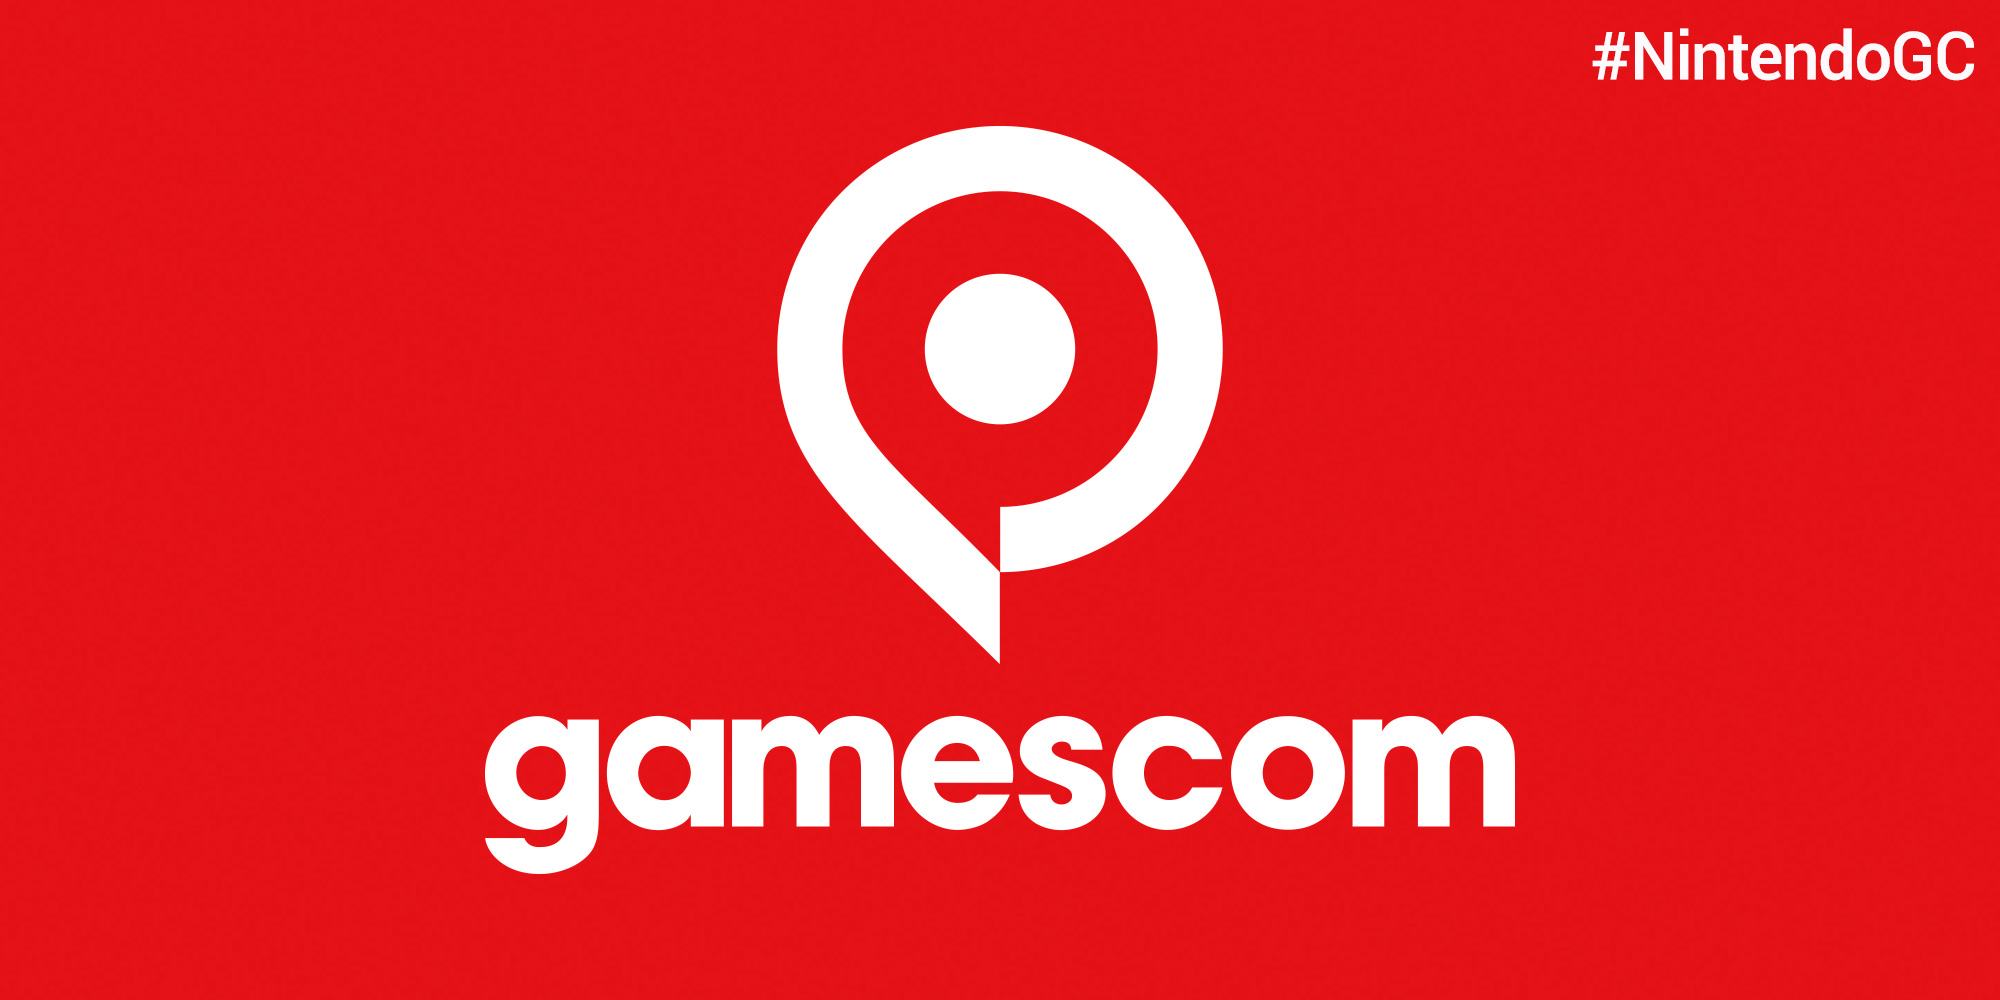 Nintendo of Europe's gamescom 2017 website